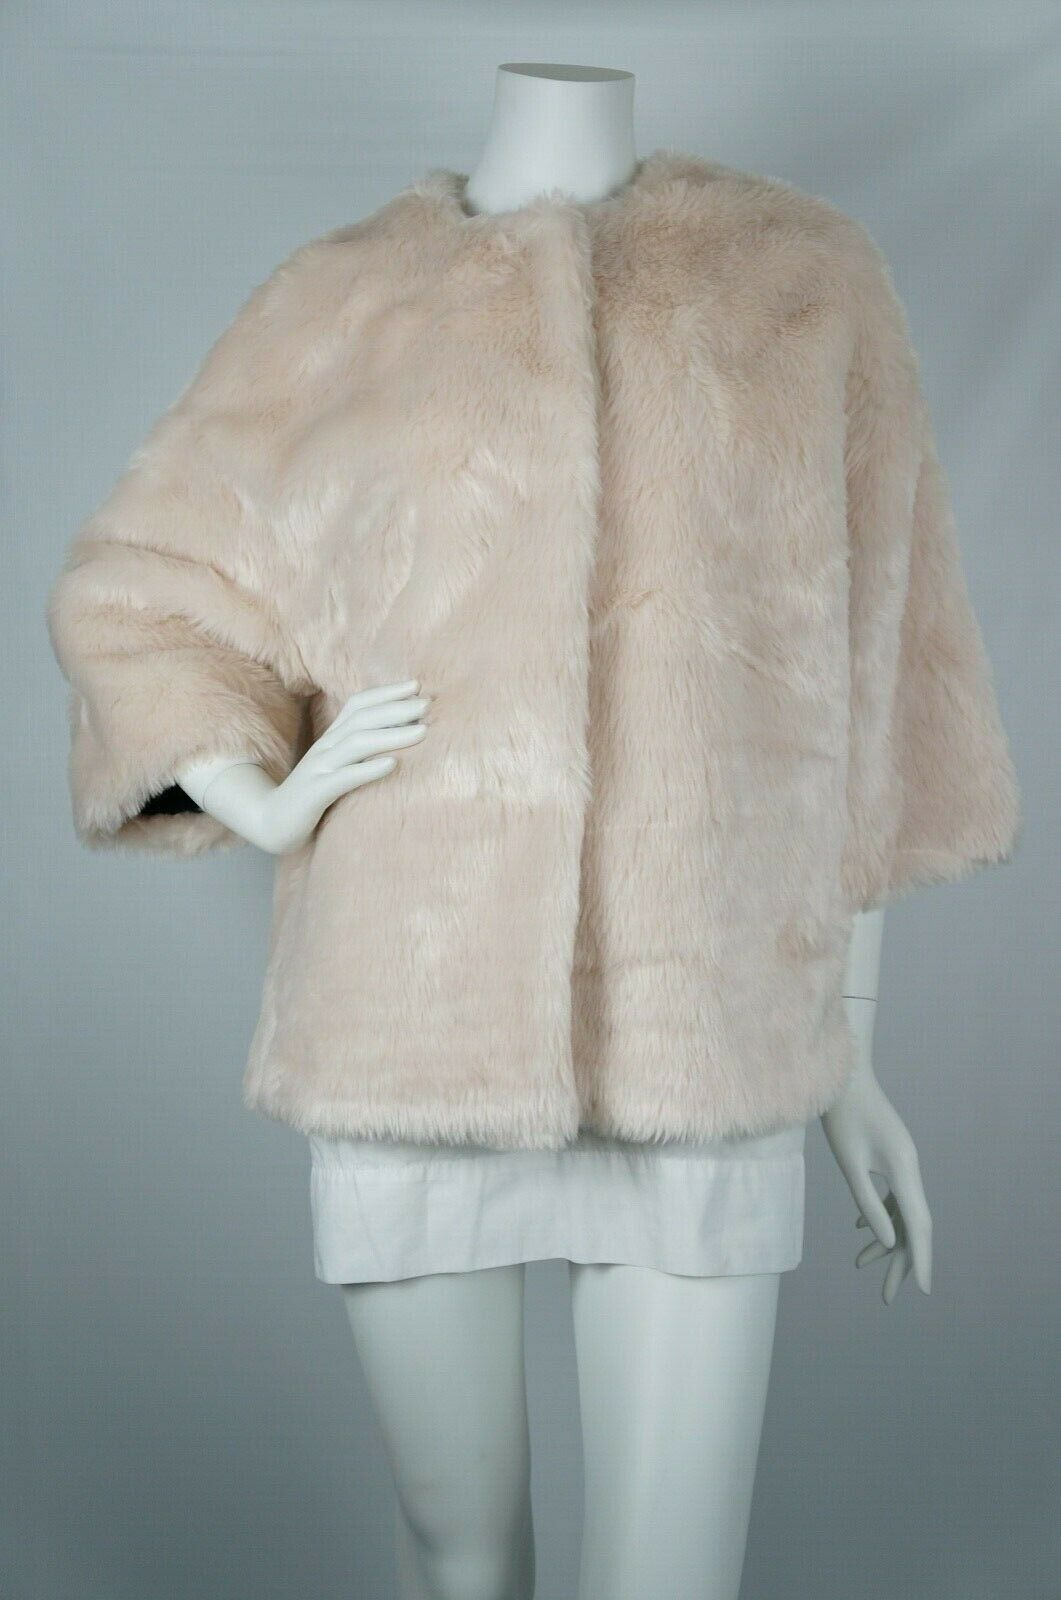 424 FIFTH LORD & TAYLORS OVERSIZED FAUX FUR 3 4 SLEEVE SHORT COAT SZ M PINK NWT